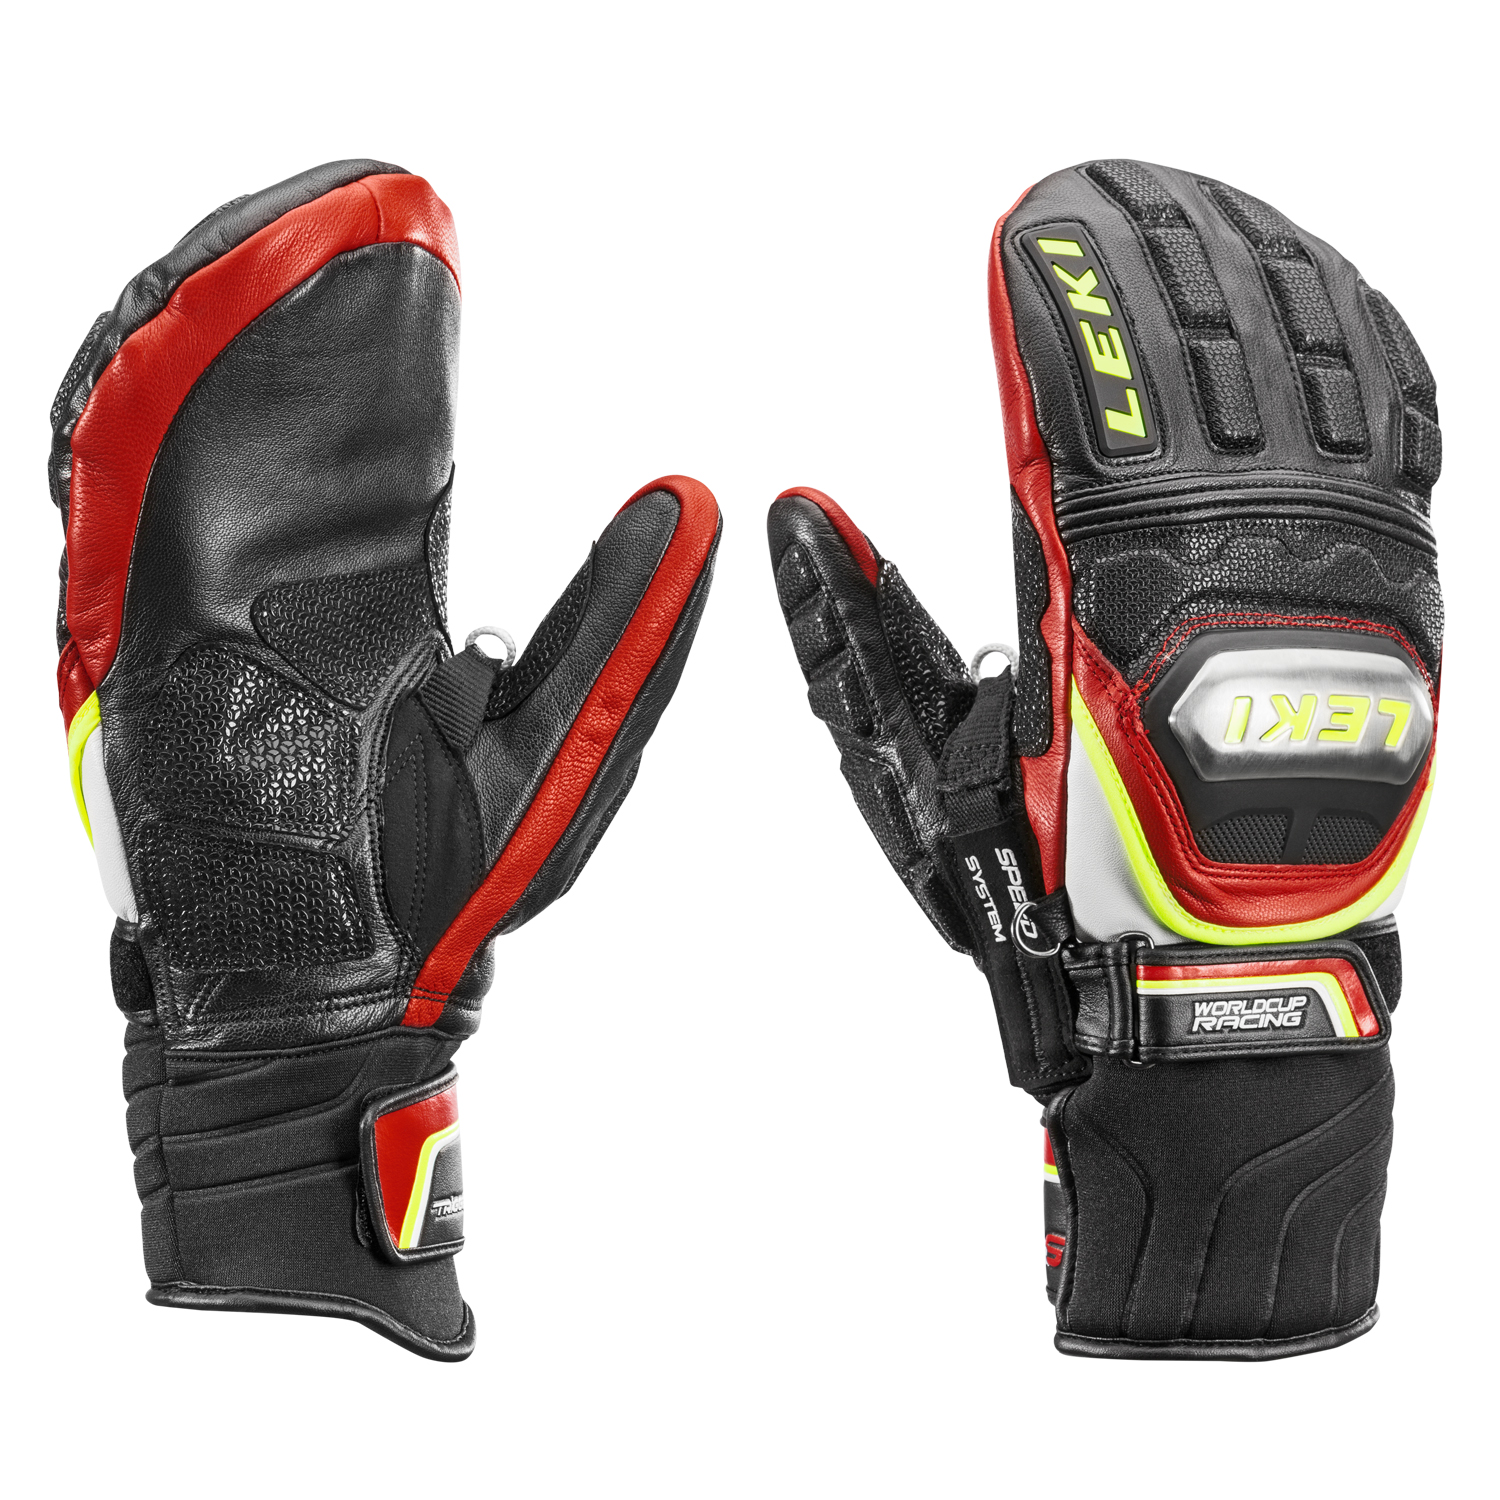 Варежки мужские Leki Worldcup Race TI S Mitten Speed System Black/Red/White/Yellow - Фото 1 большая